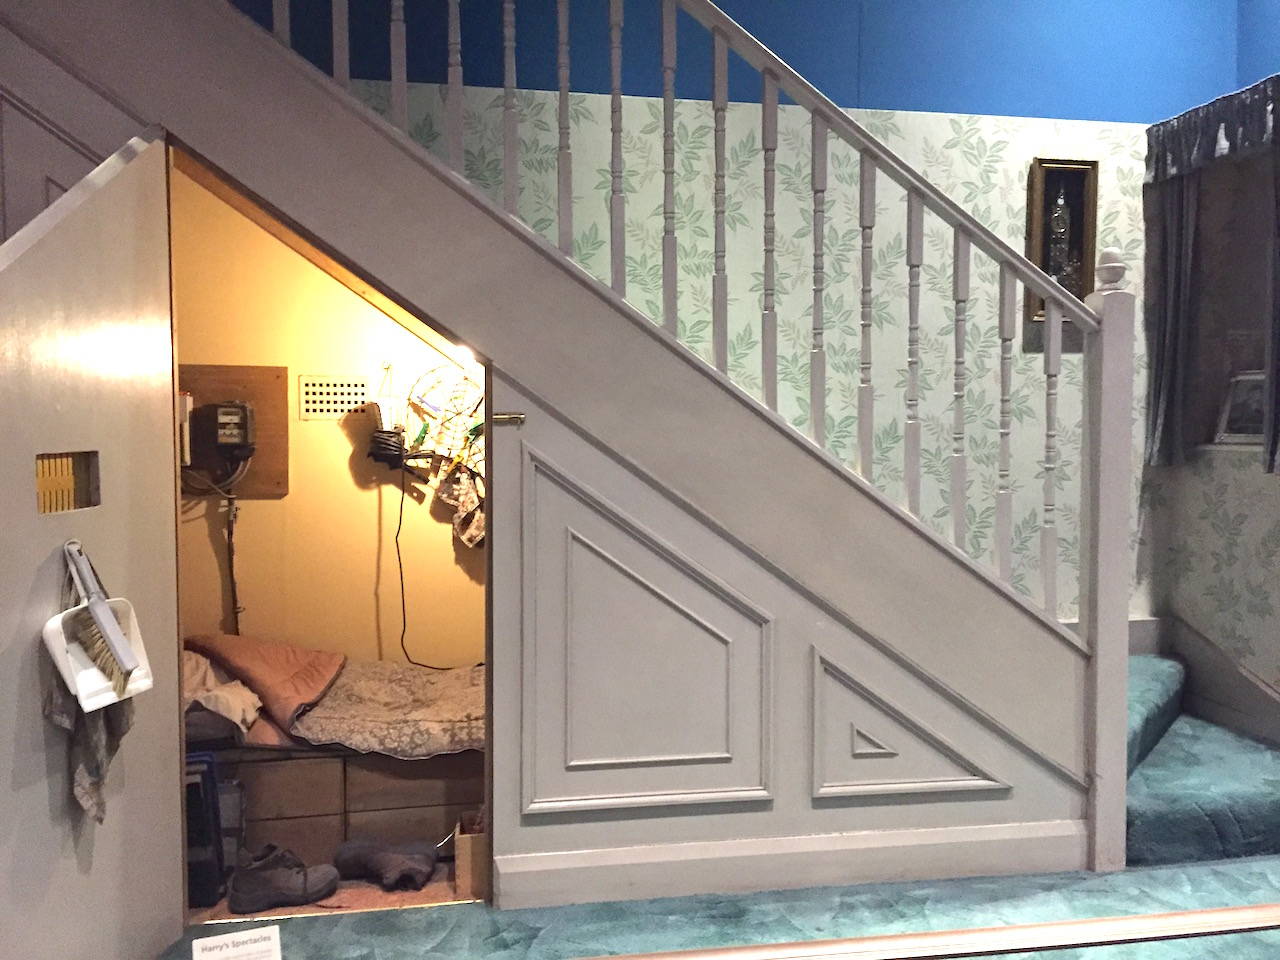 Dream Room The Cupboard Under Stairs Part 1